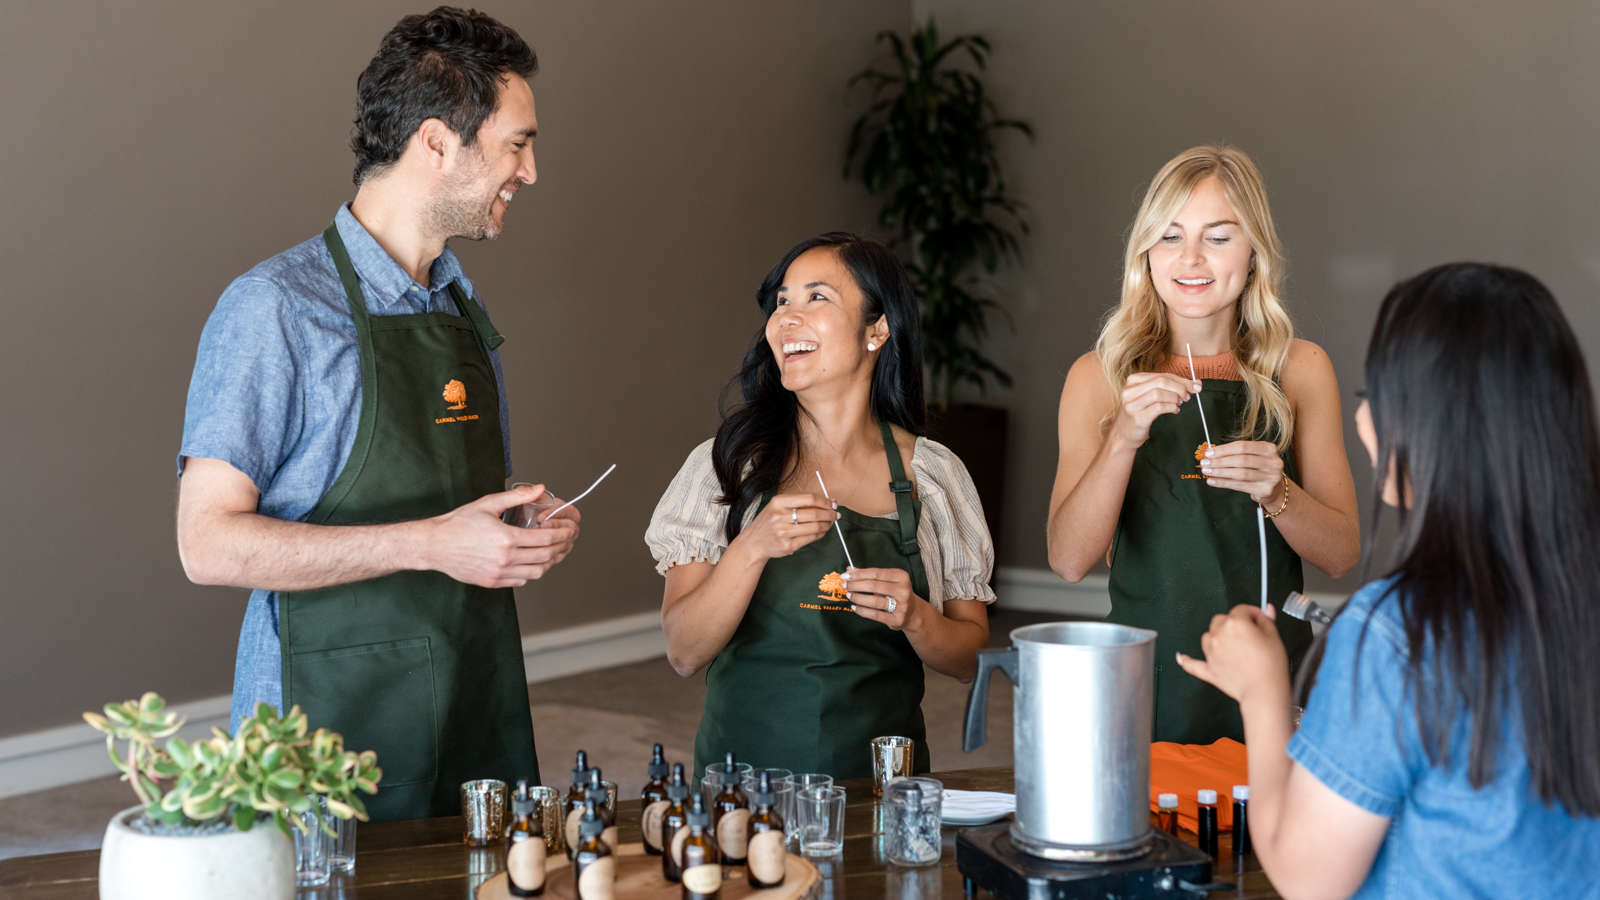 Carmel Valley Ranch_Group Activities_Bath and Body_Experimental Market_Sugar Scrub Blending_76_SRusso